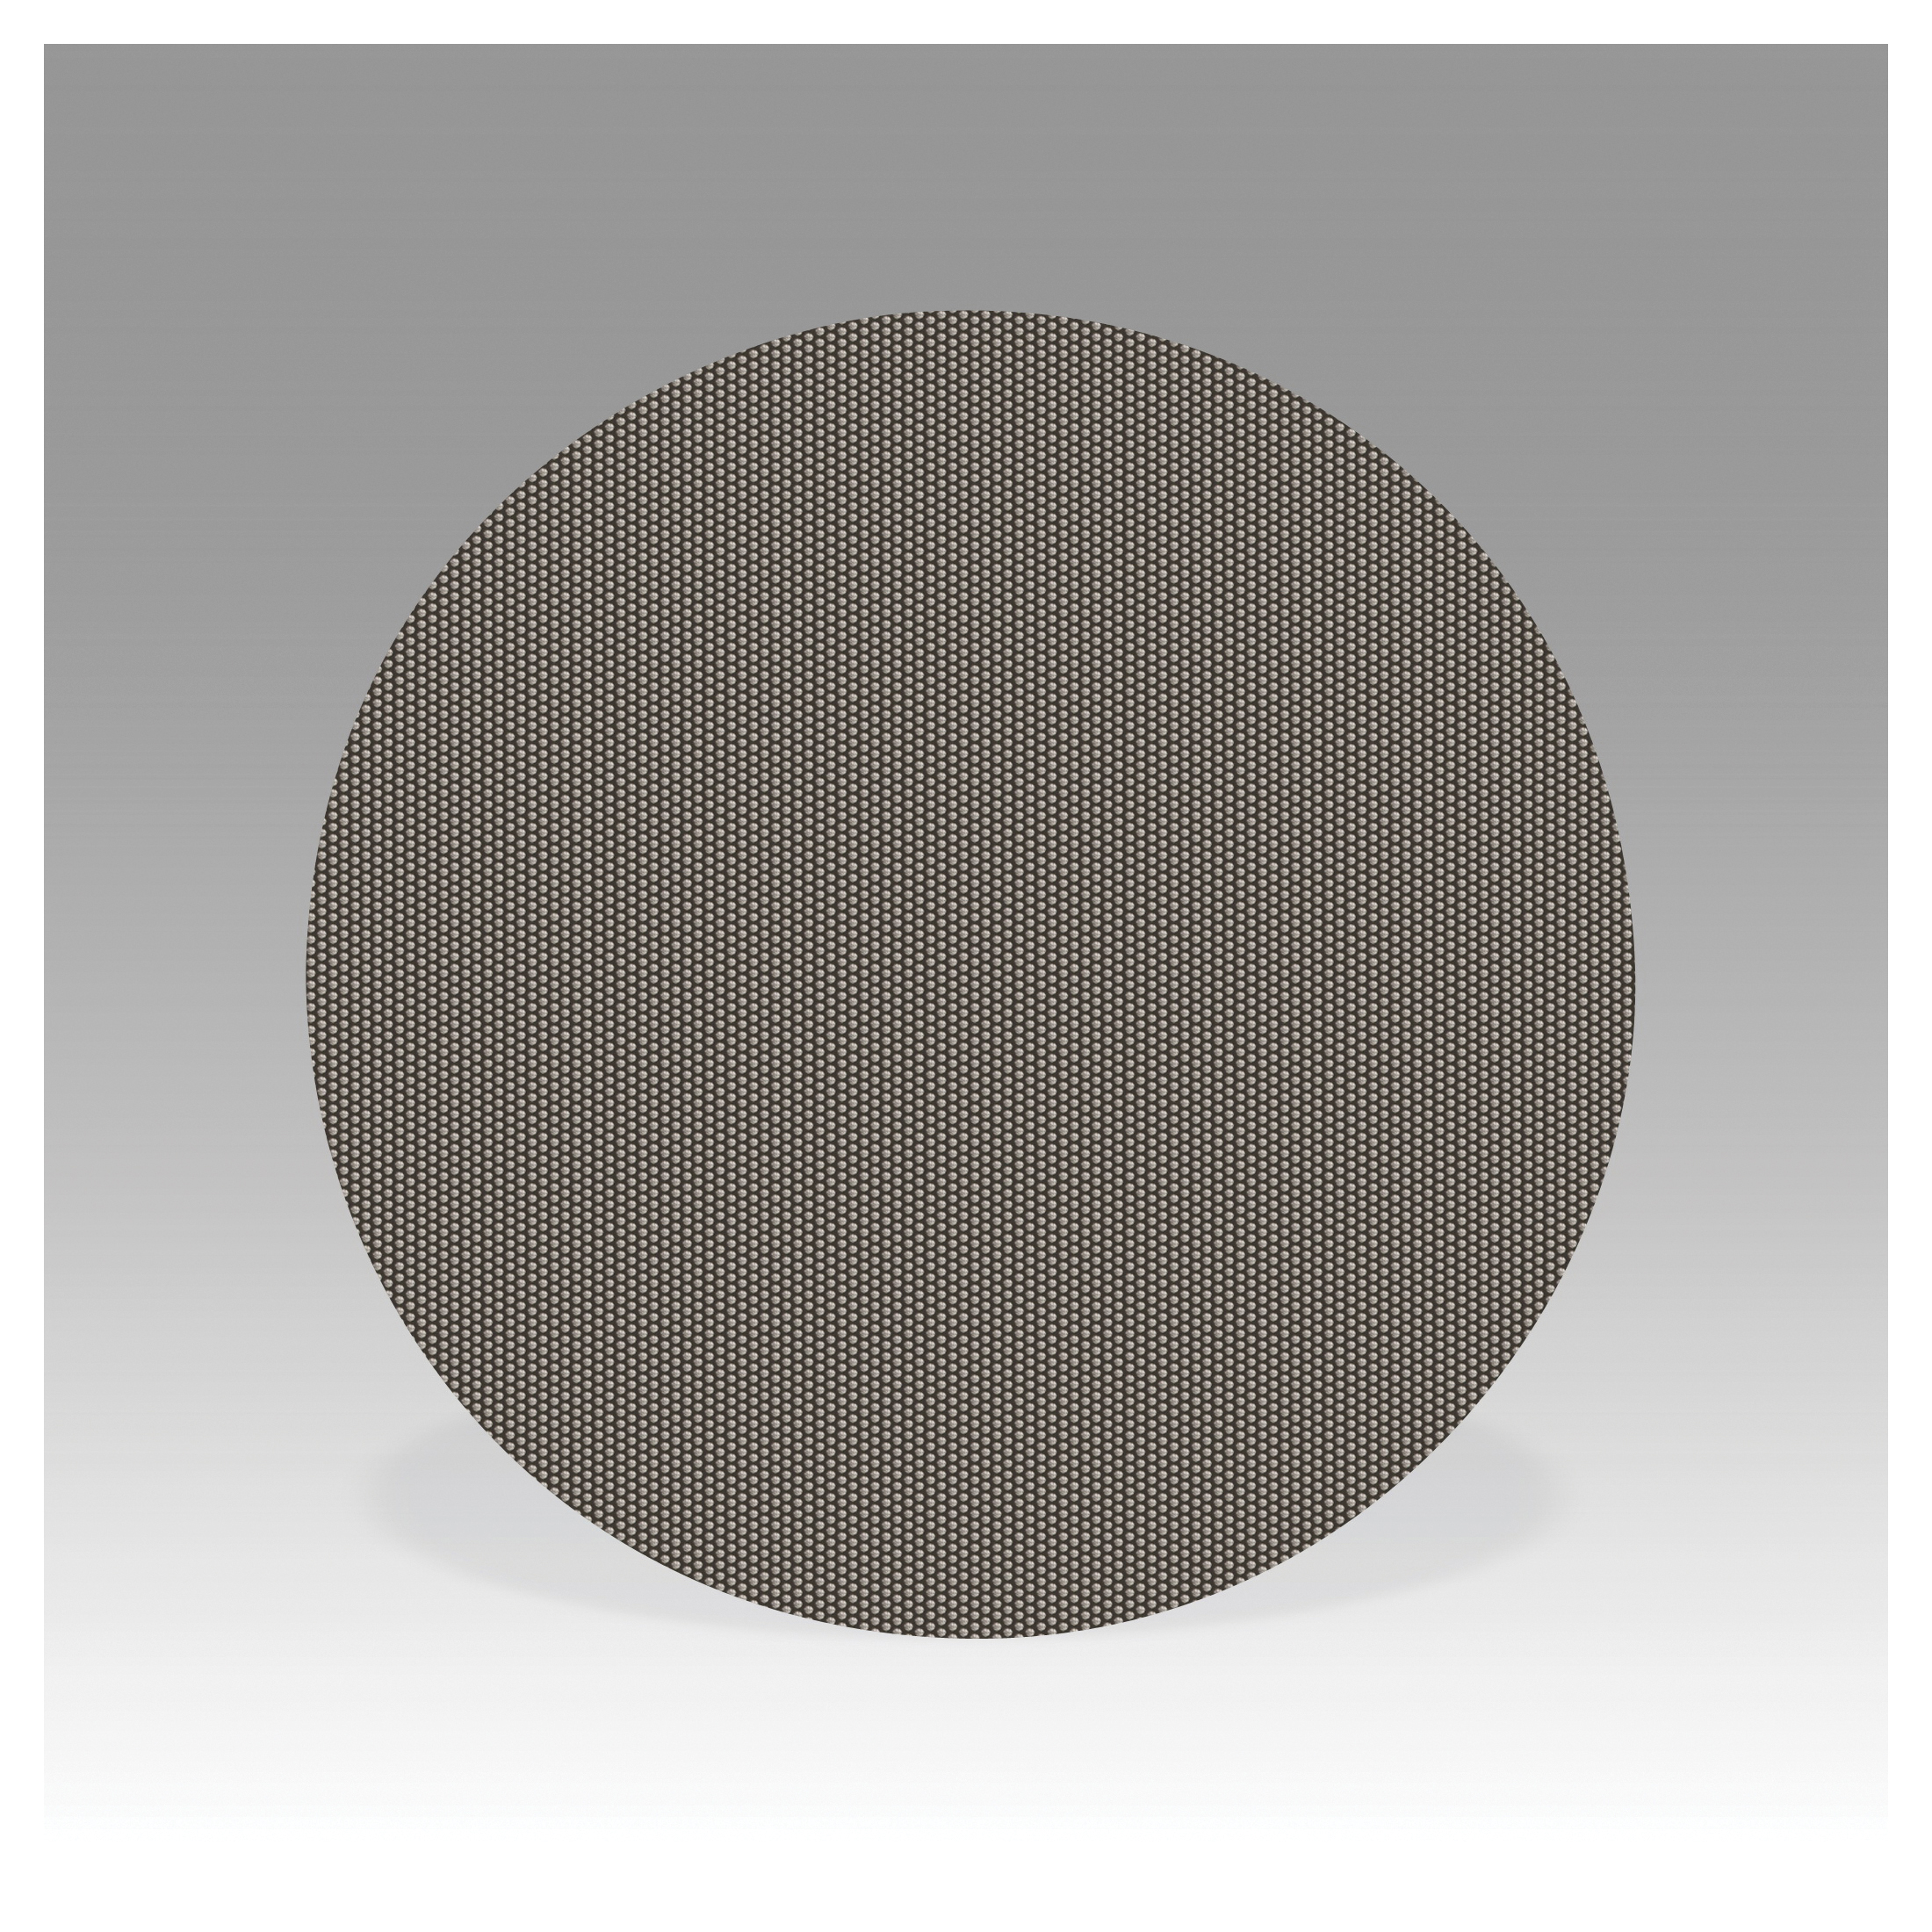 3M™ 051144-81300 6008J Flexible Coated Abrasive Disc, 8 in Dia, No Hole, M250 Grit, Medium Grade, Diamond Abrasive